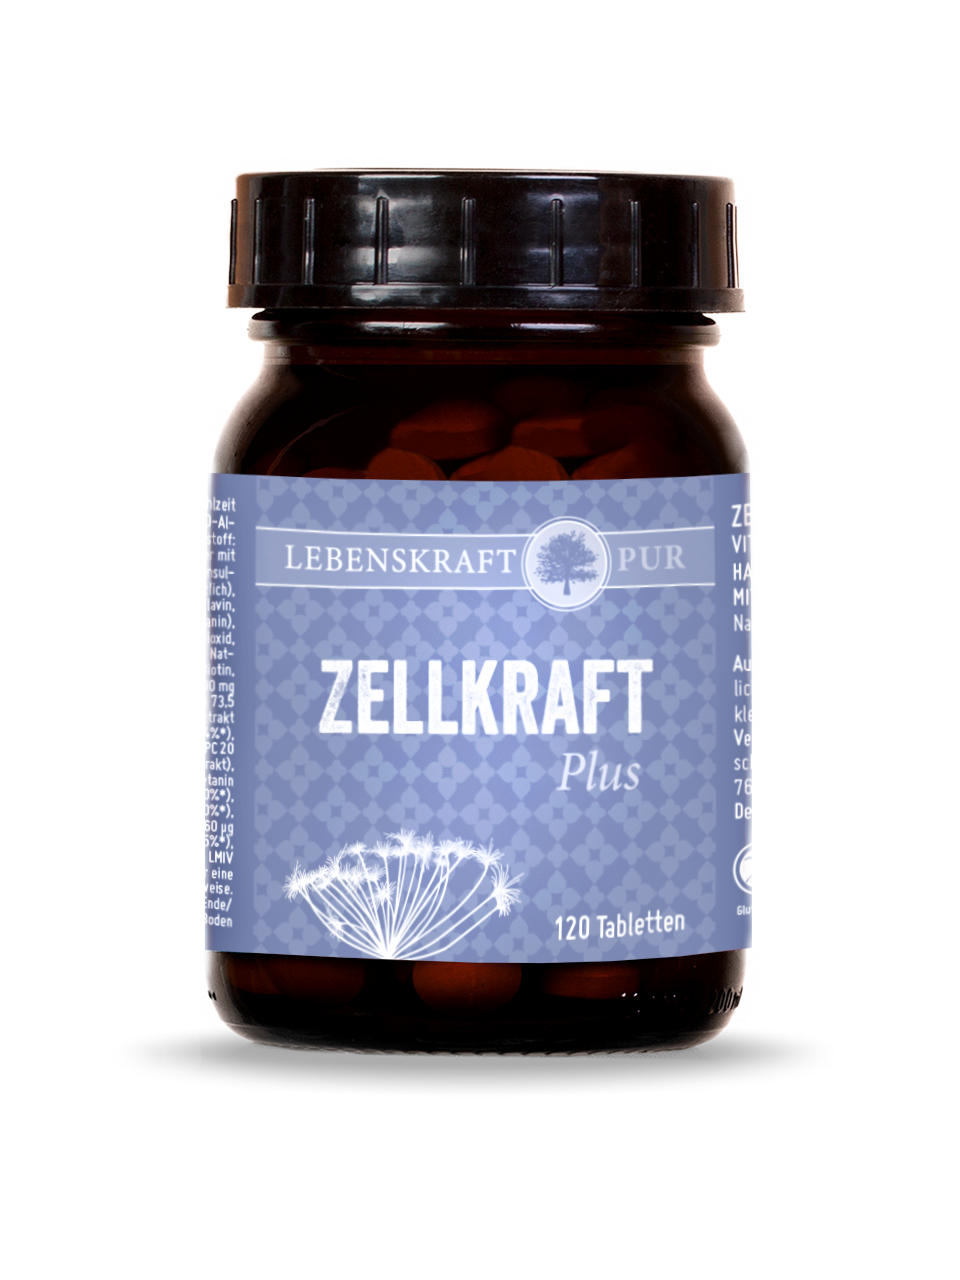 Zellkraft Plus